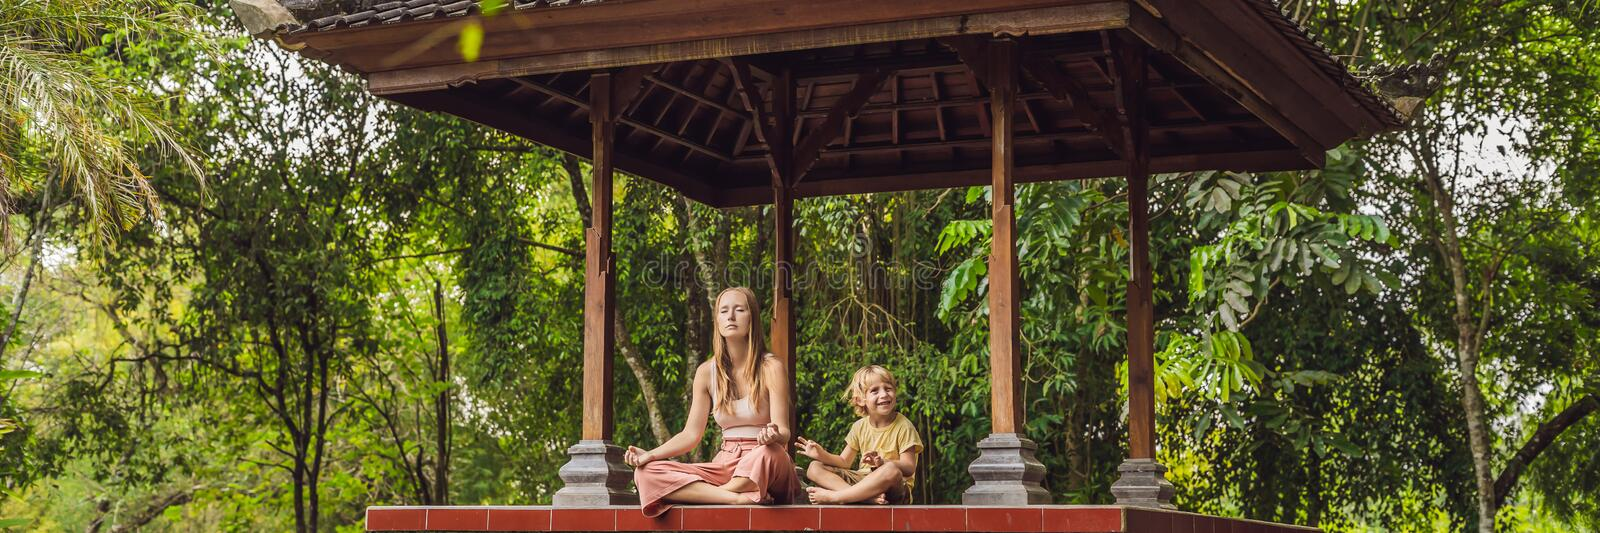 Mom and son meditate practicing yoga in the traditional balinesse gazebo BANNER, long format. Mom and son meditate practicing yoga in the traditional balinesse royalty free stock photo